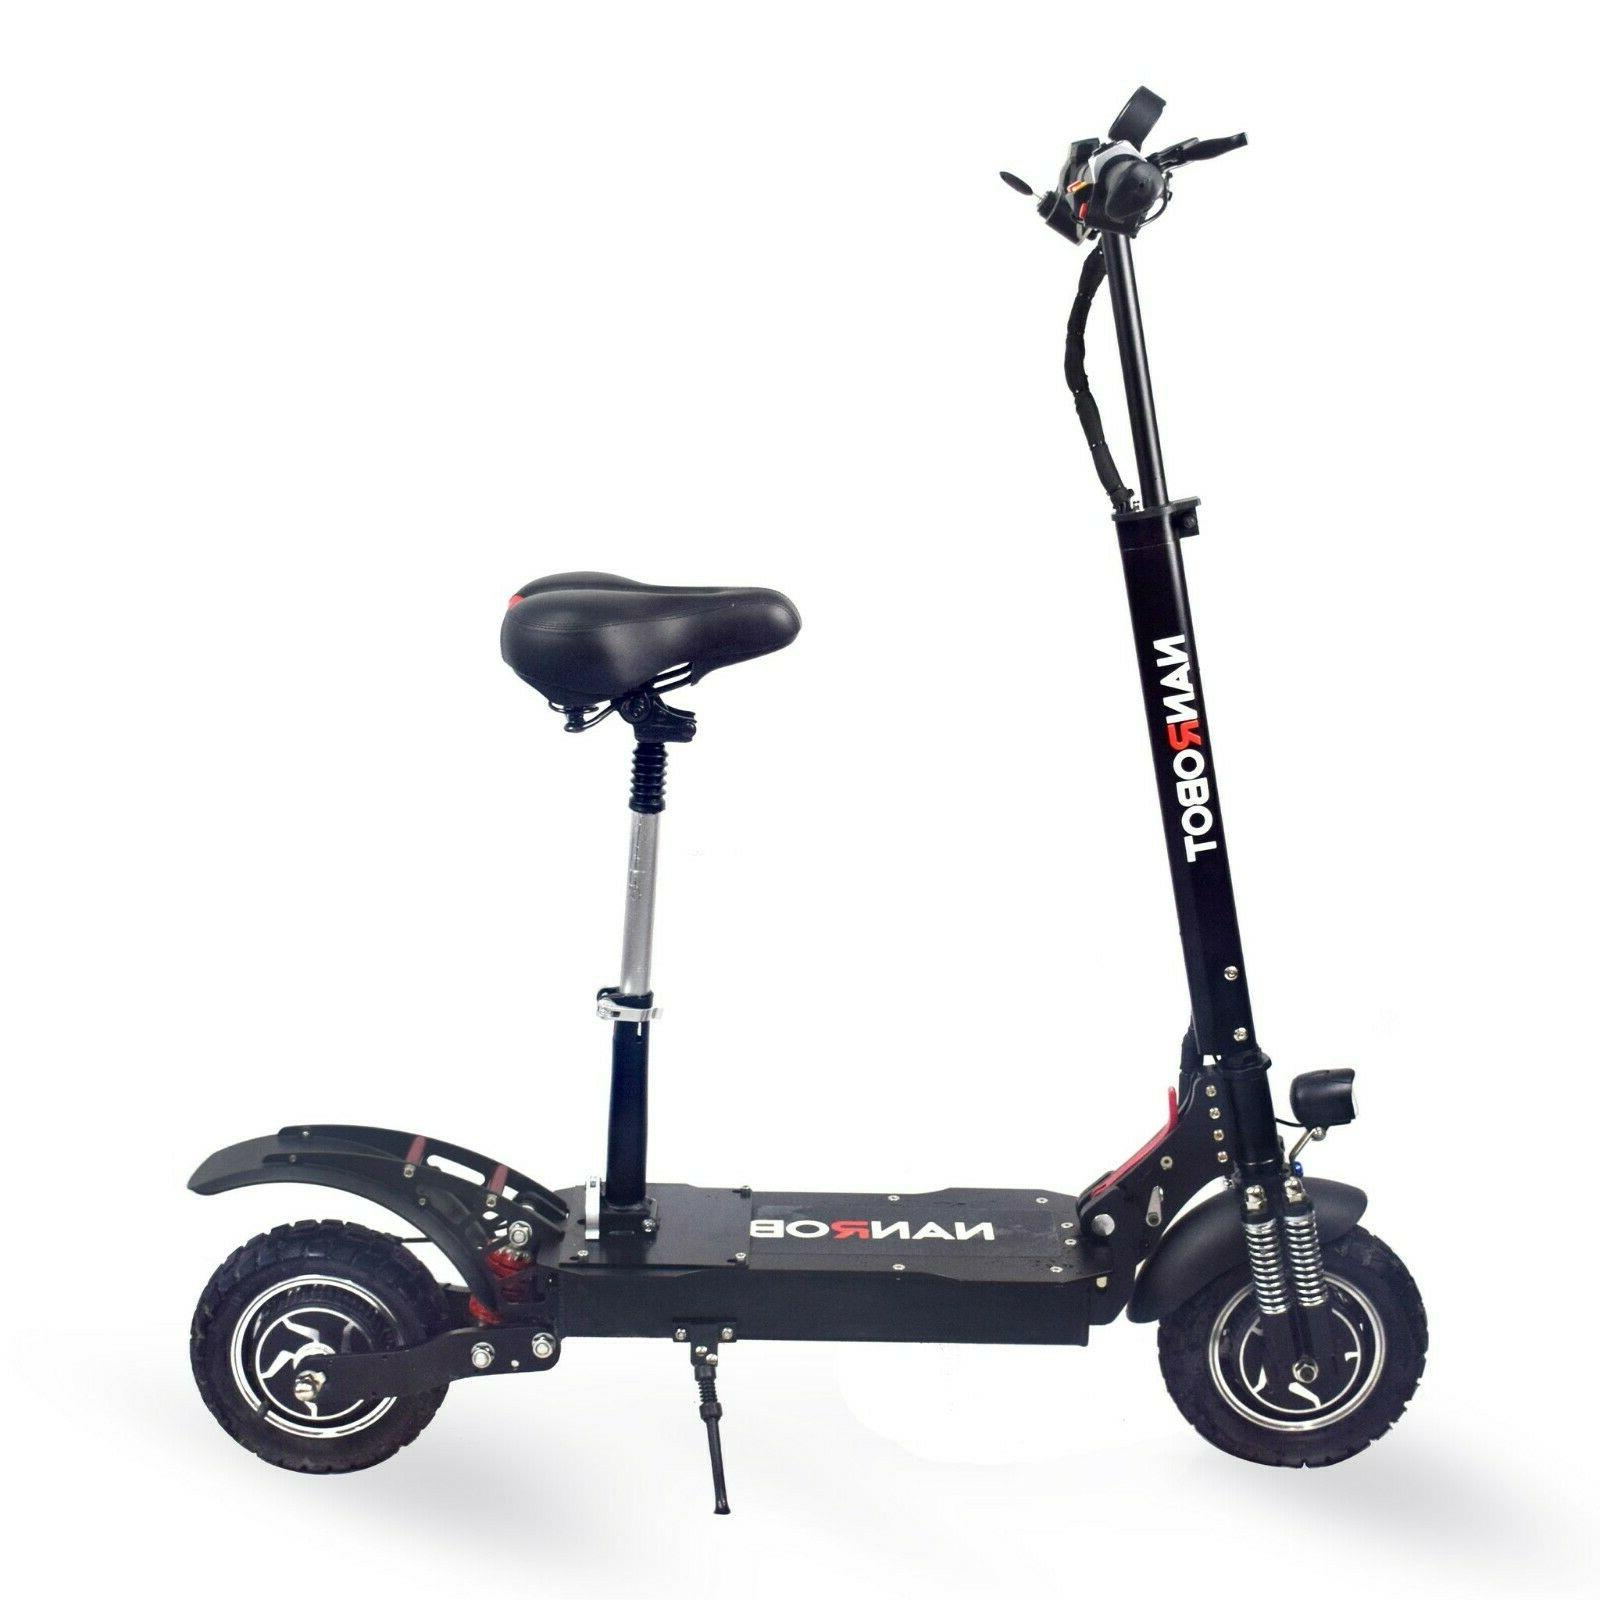 SCOOTER FAST FREE EU SHIPPING